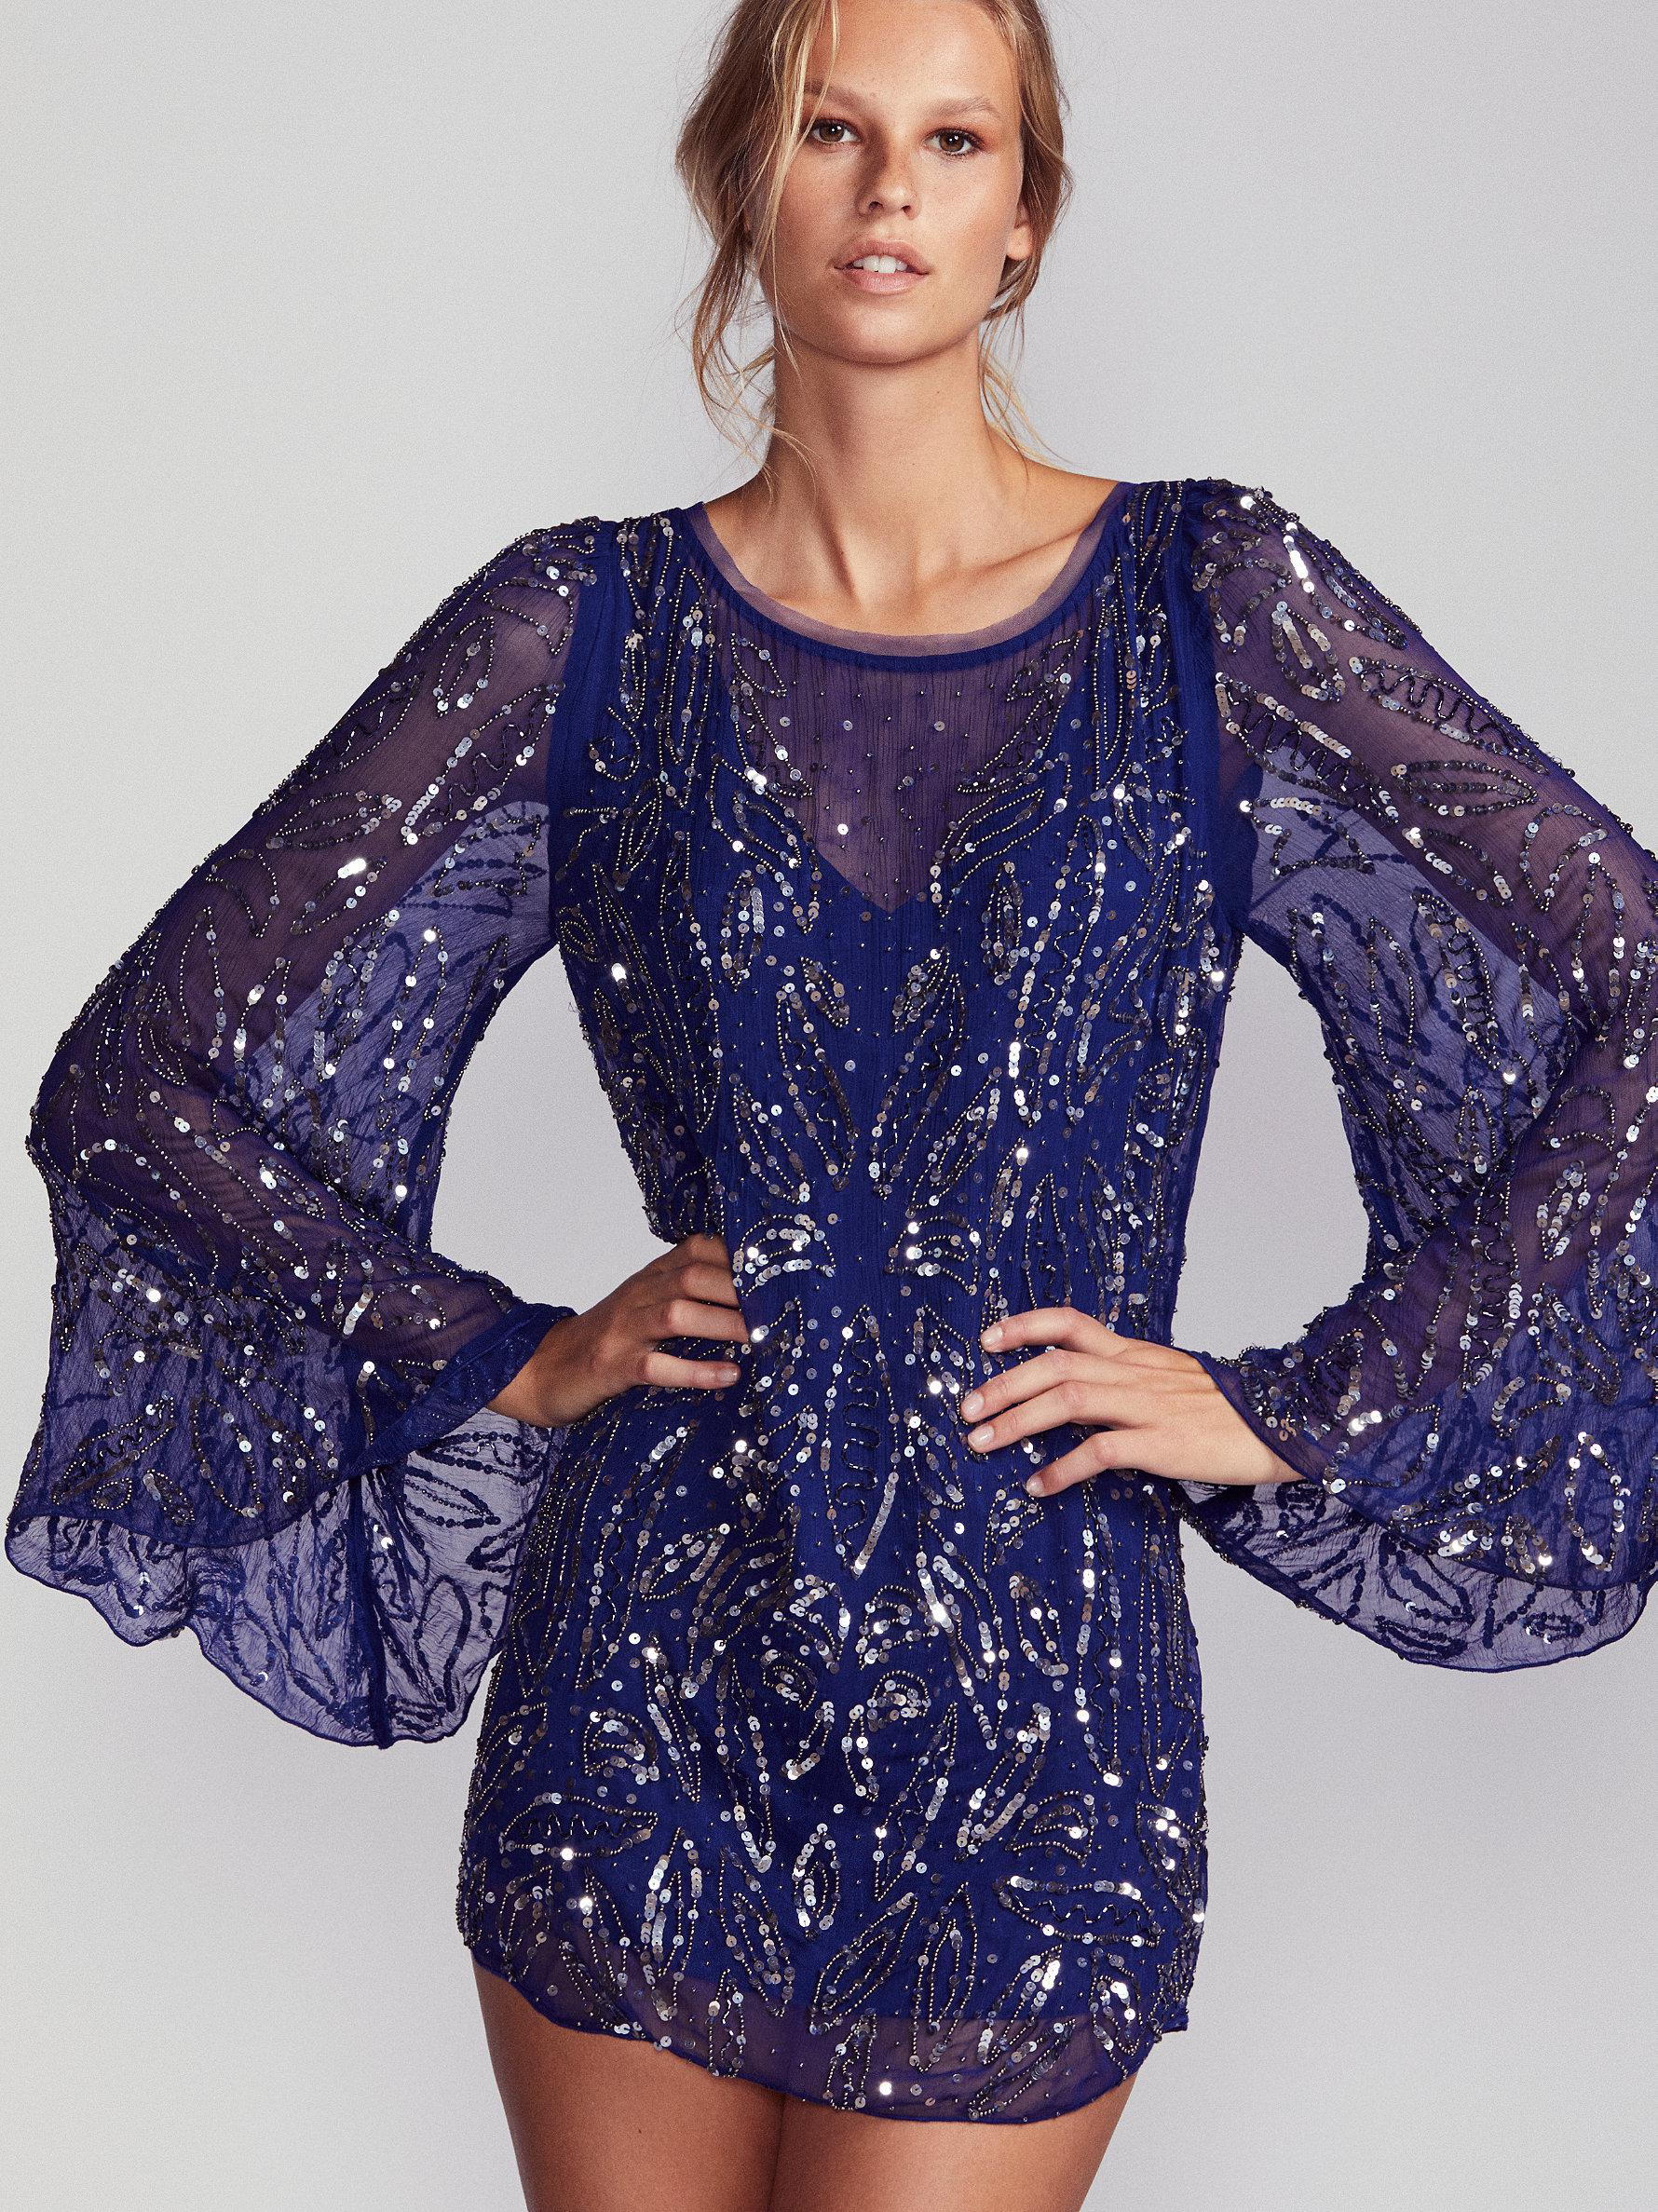 Lyst - Free People Sequin Sparkle Bow Mini Dress in Blue